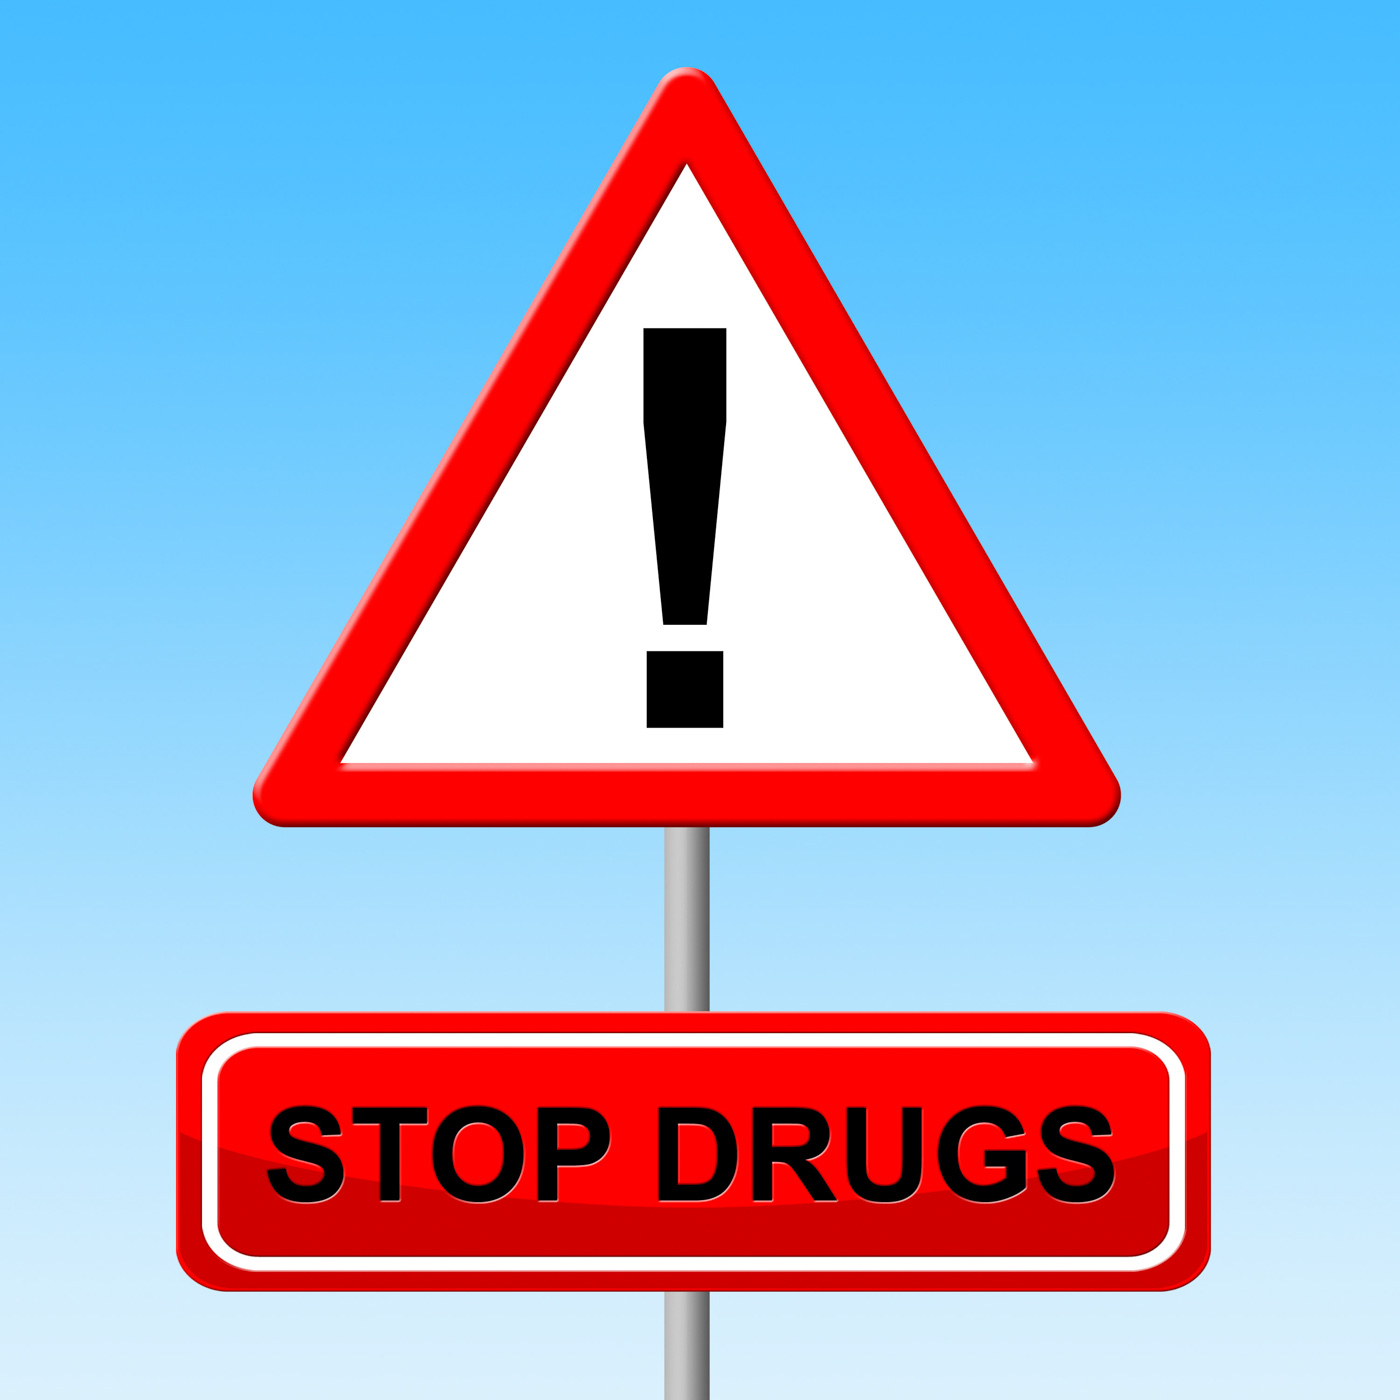 Stop drugs indicates warning sign and cannabis photo